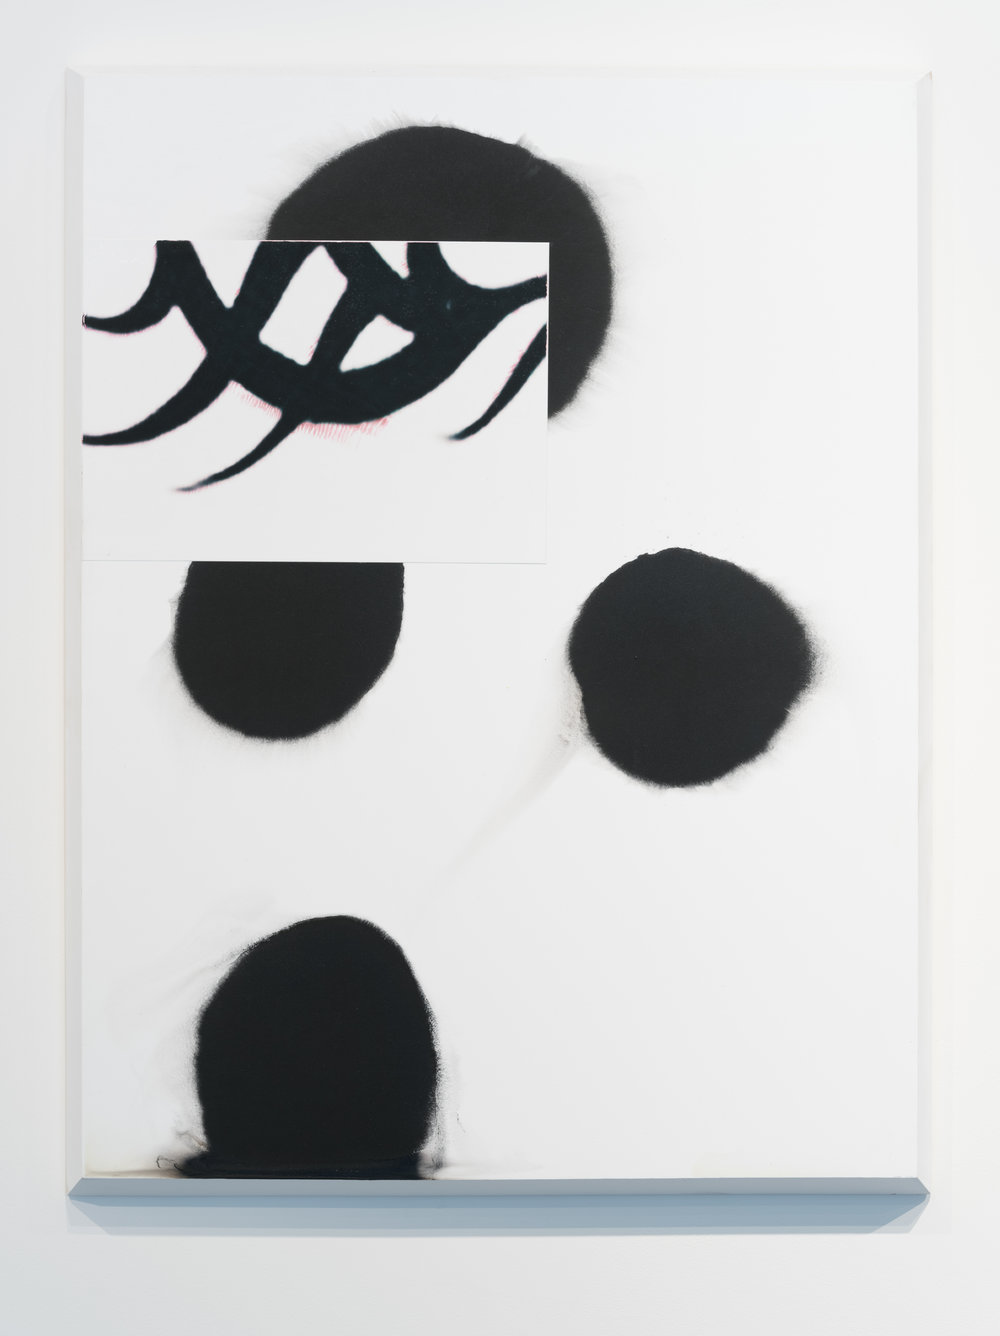 Archive110_dude_perfect , 2017  Gesso, acrylic, pigment transfer, plywood  31 x 23 in.